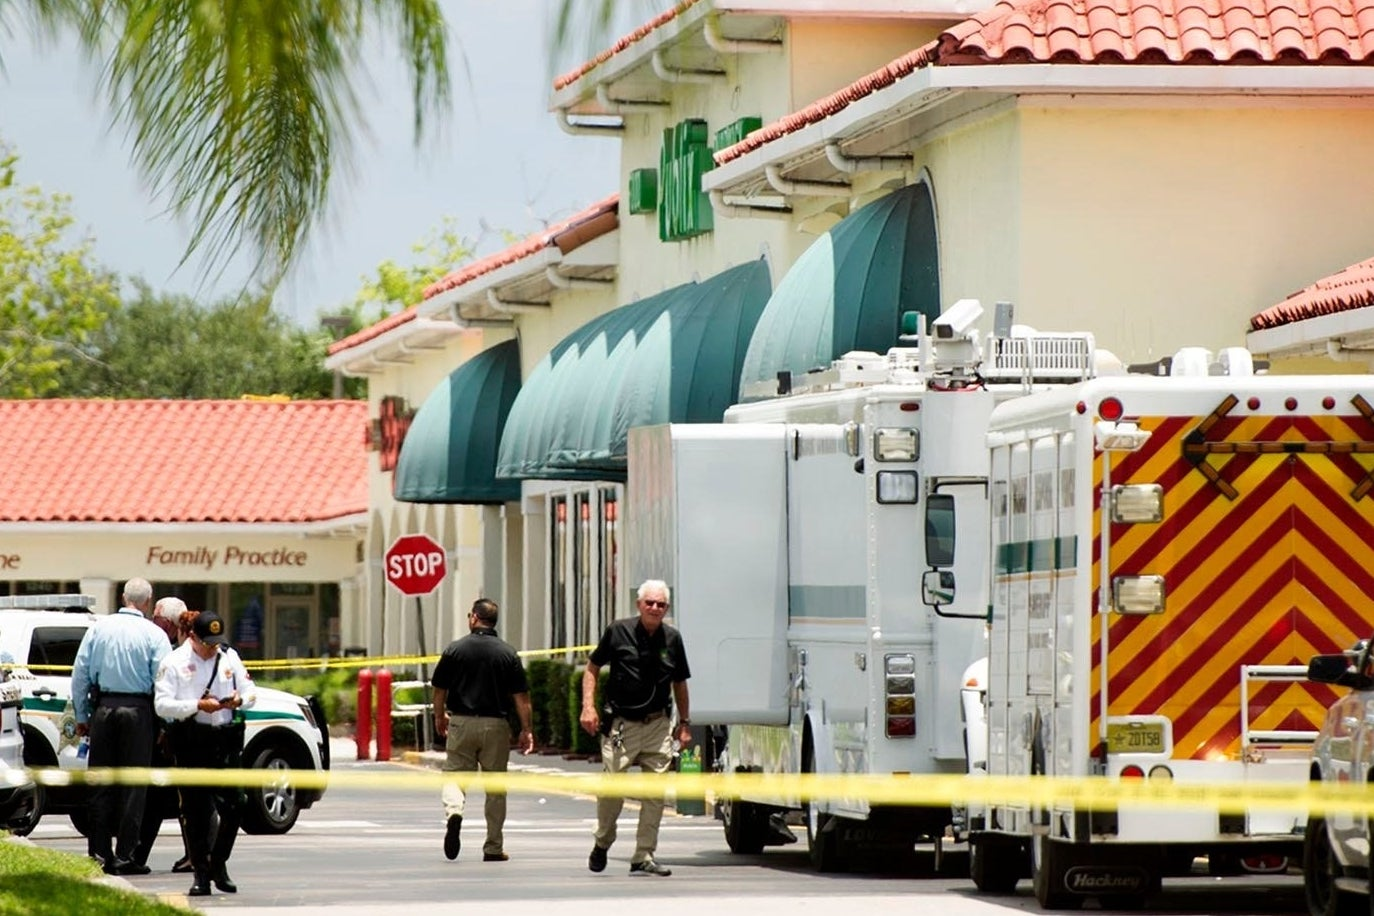 <p>A Woman And Her 1-Year-Old Grandson Were Fatally Shot While Shopping Inside A Grocery Store thumbnail